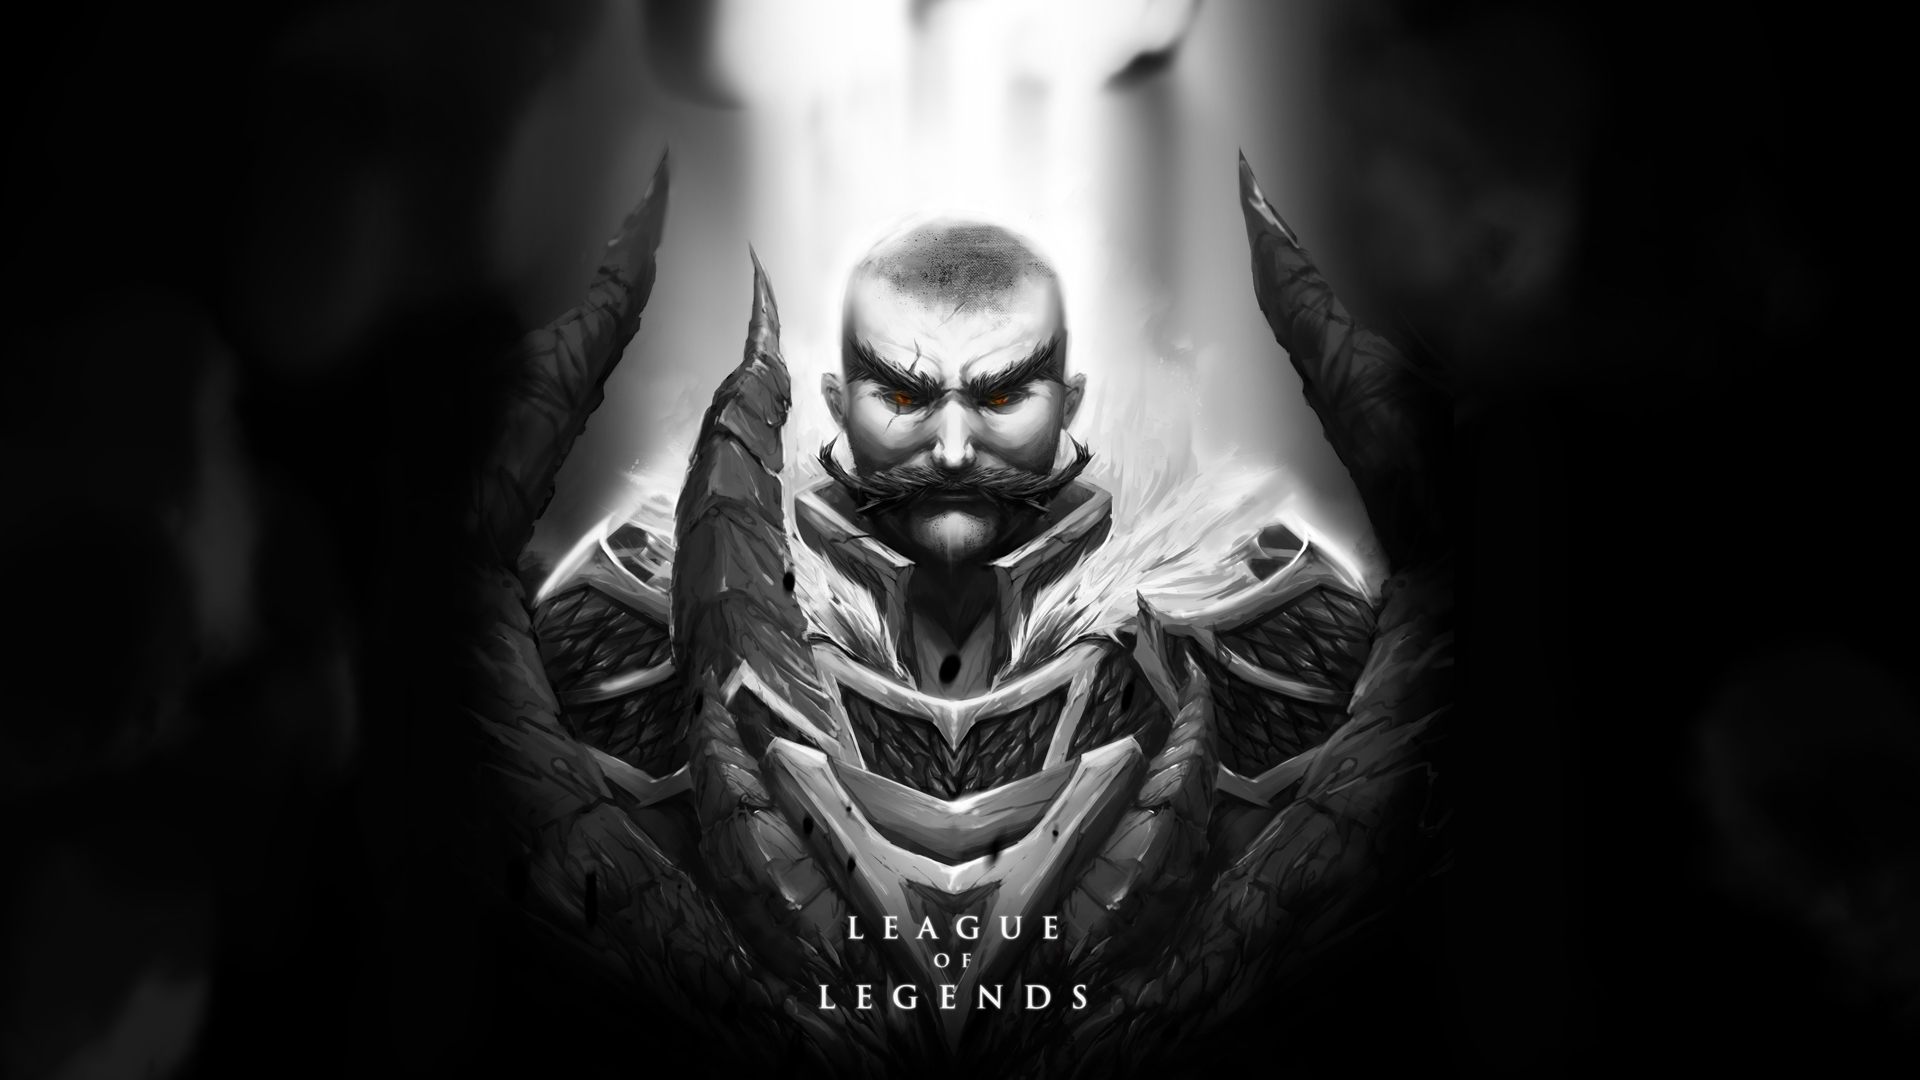 dragonslayer_braum_wallpaper_by_wacalac-d7m6iso